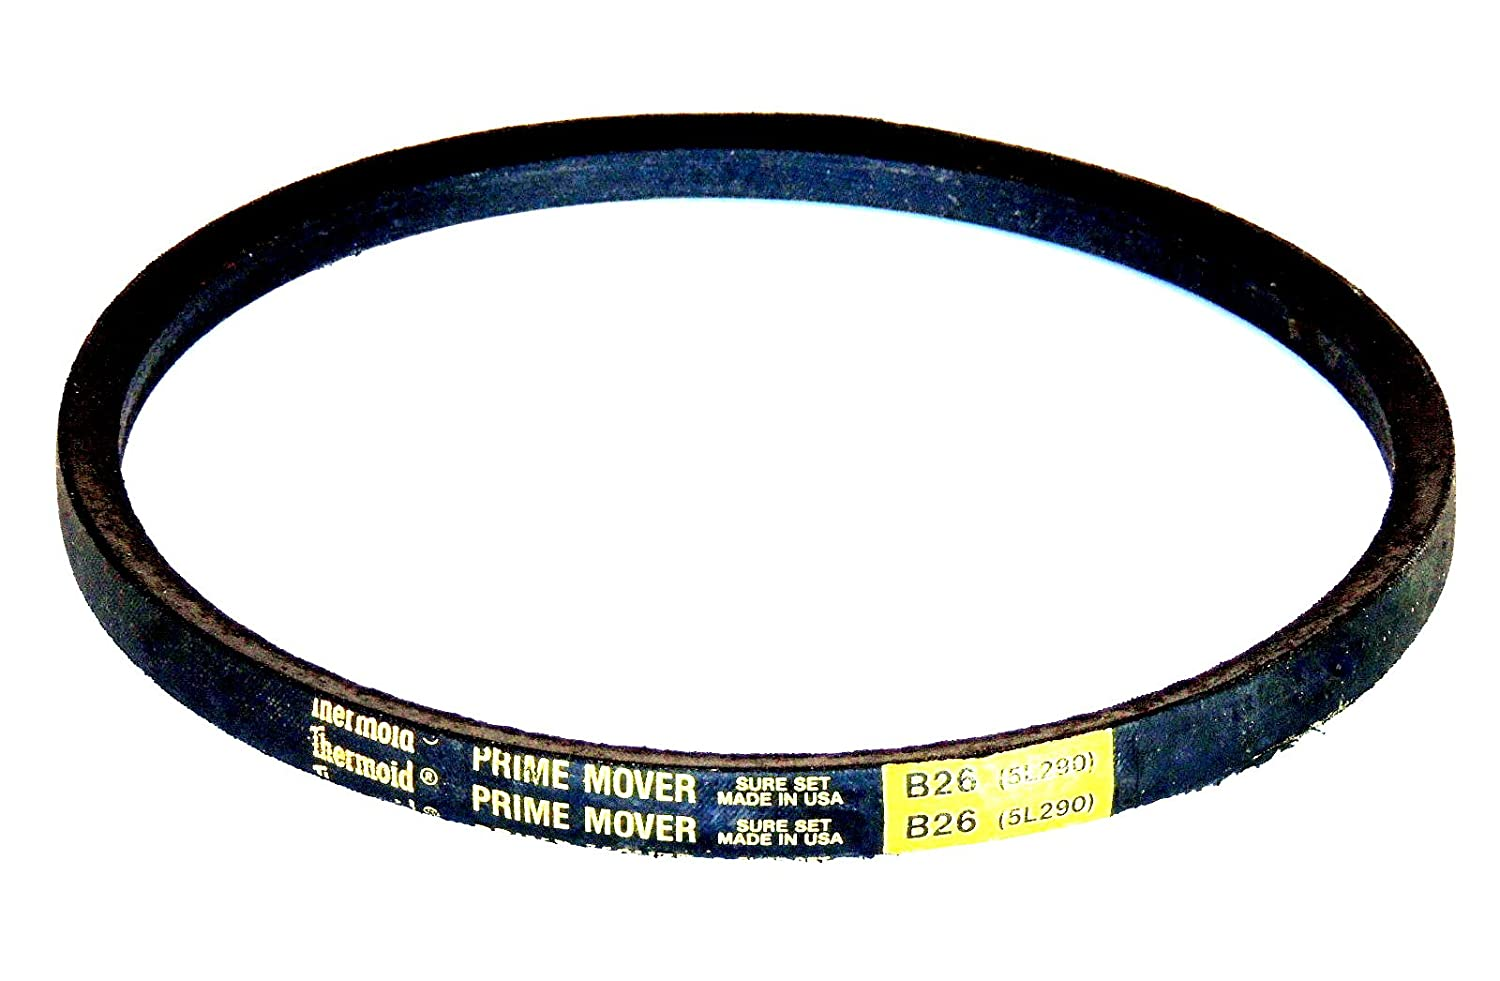 HBD//Thermoid B126 Prime Mover Unicord Belt Rubber